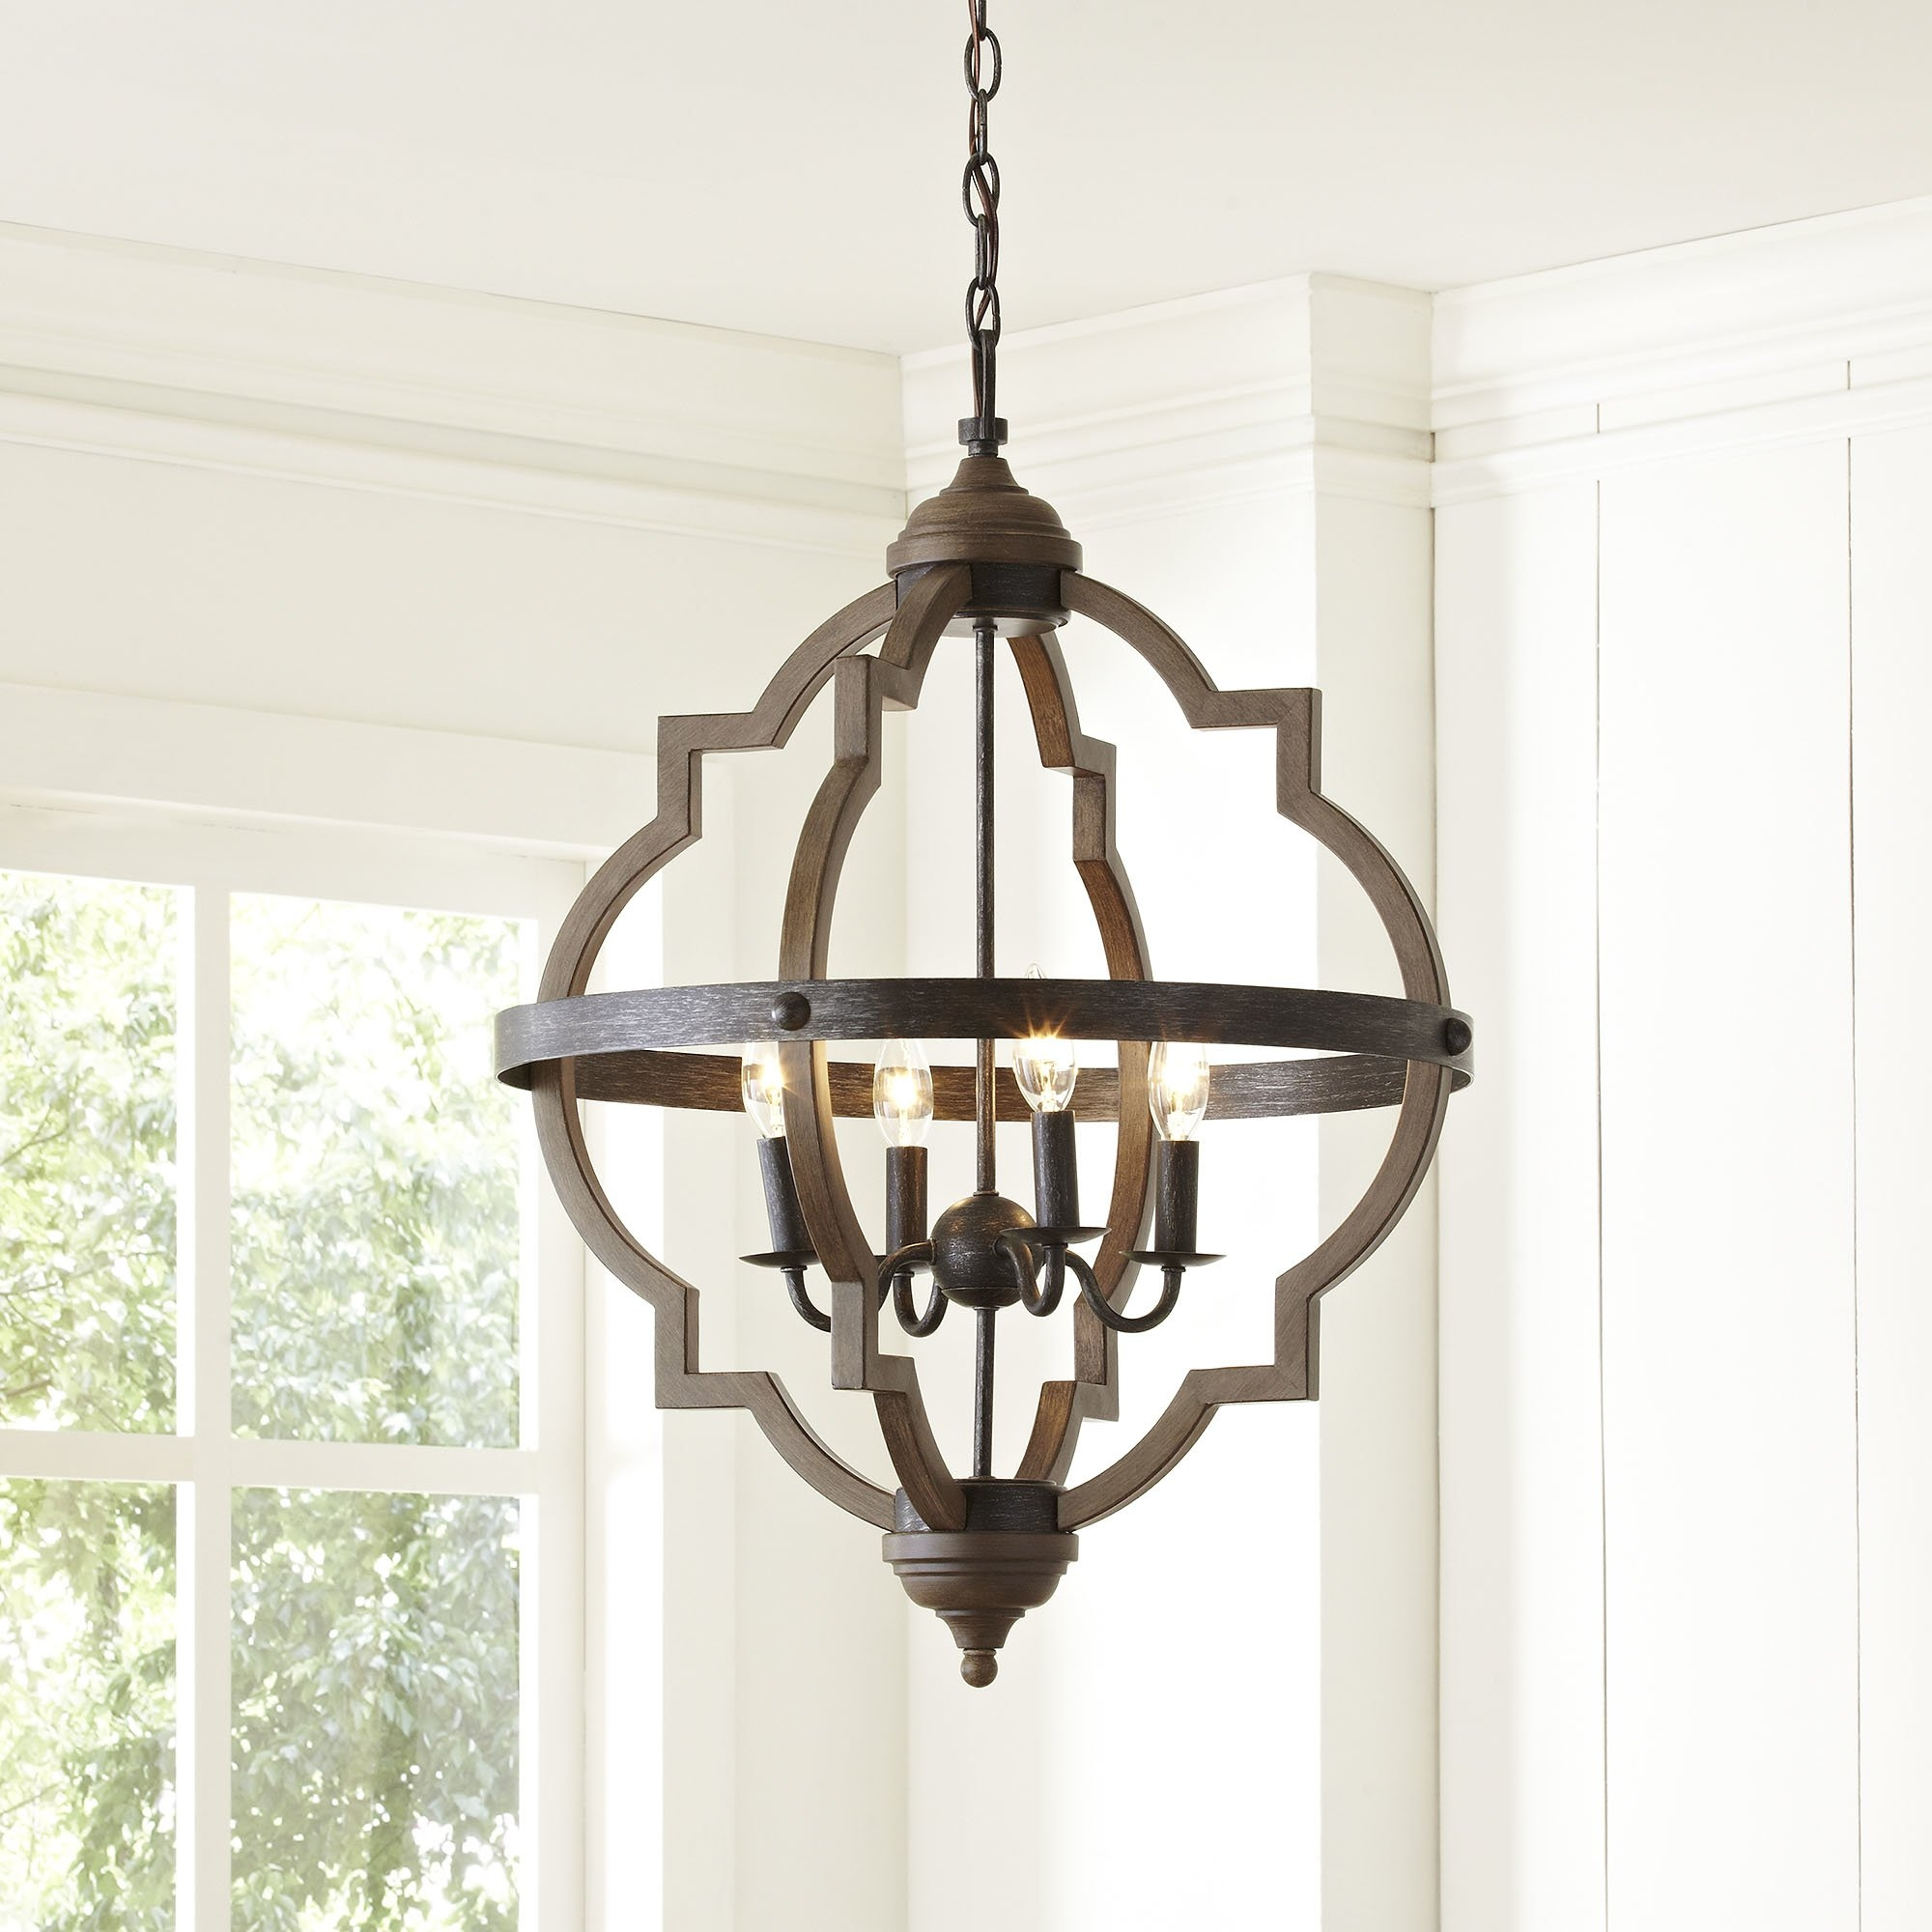 Birch Lane Bennington Candle Style Chandelier Reviews Wayfair In Candle Chandelier (Image 2 of 15)